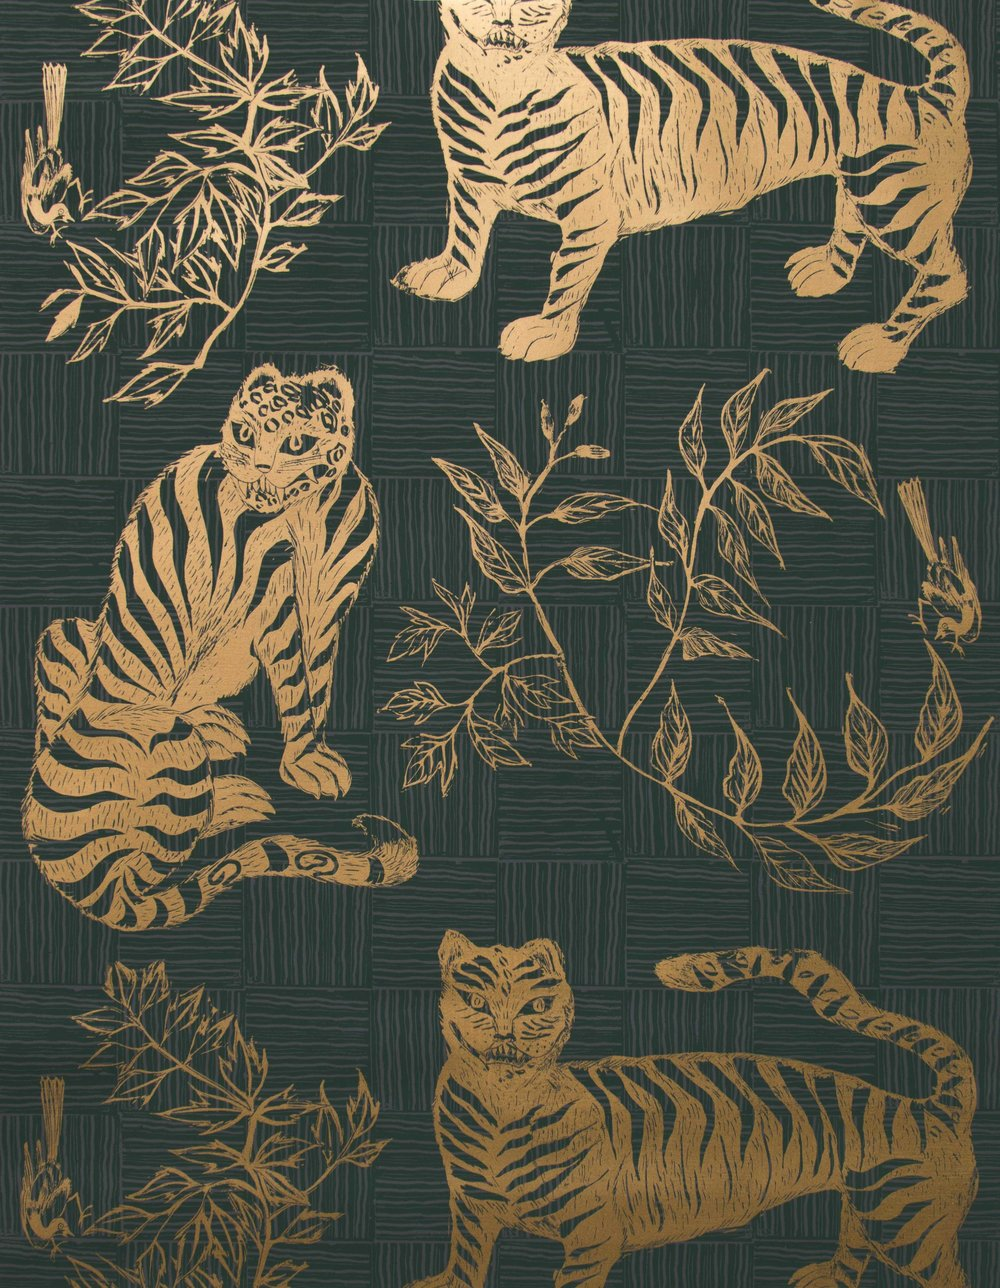 Krane Home_Tiger and Magpie Hunter Wallpaper-1.jpeg